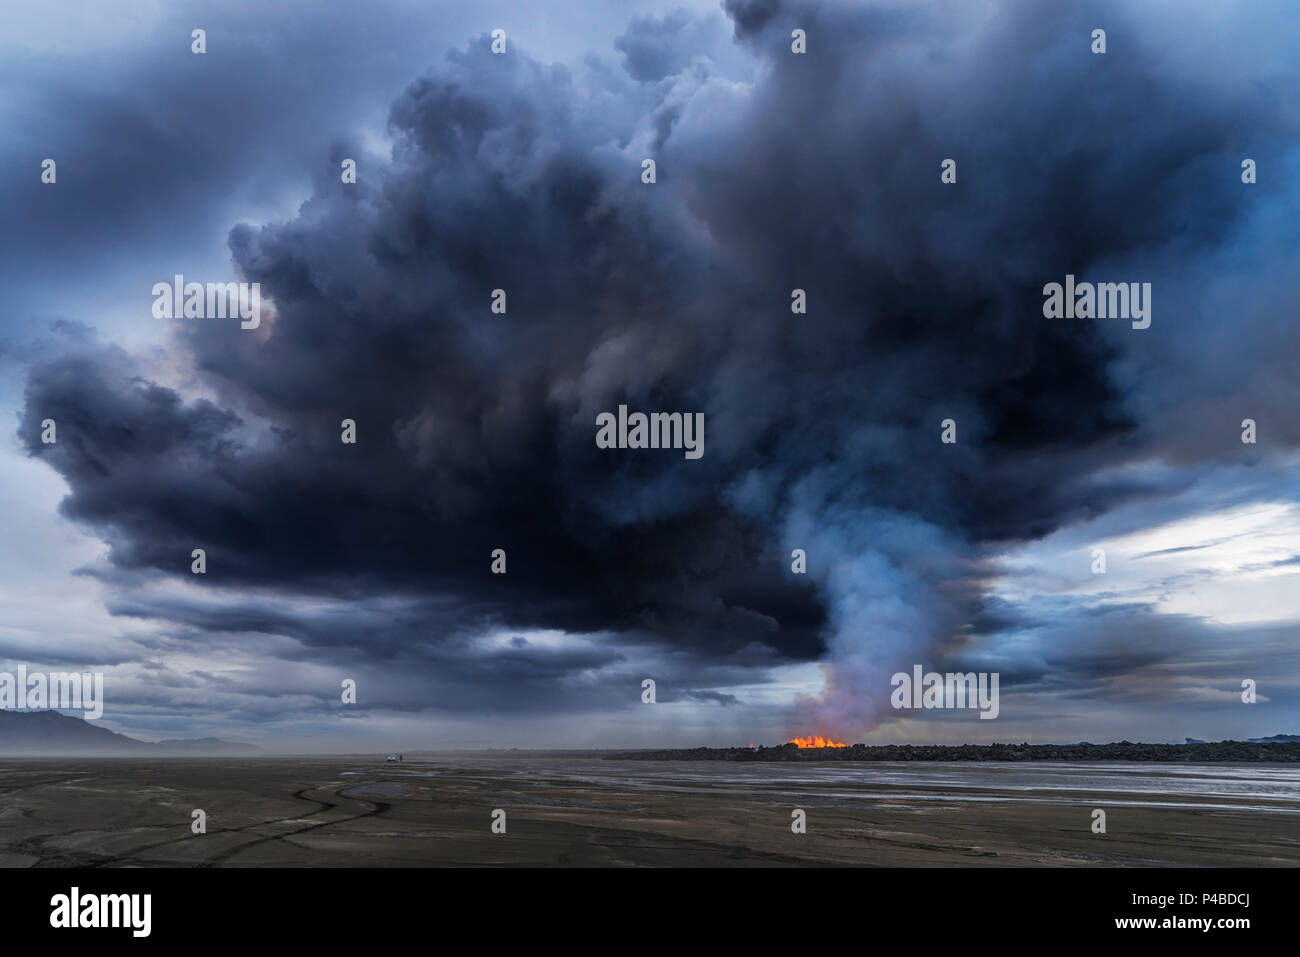 Volcanic Plumes with toxic gases, Holuhraun Fissure Eruption, Iceland. August 29, 2014 a fissure eruption started in Holuhraun at the northern end of a magma intrusion, which had moved progressively north, from the Bardarbunga volcano. Bardarbunga is a stratovolcano located under Vatnajokull, Iceland's most extensive glacier. - Stock Image